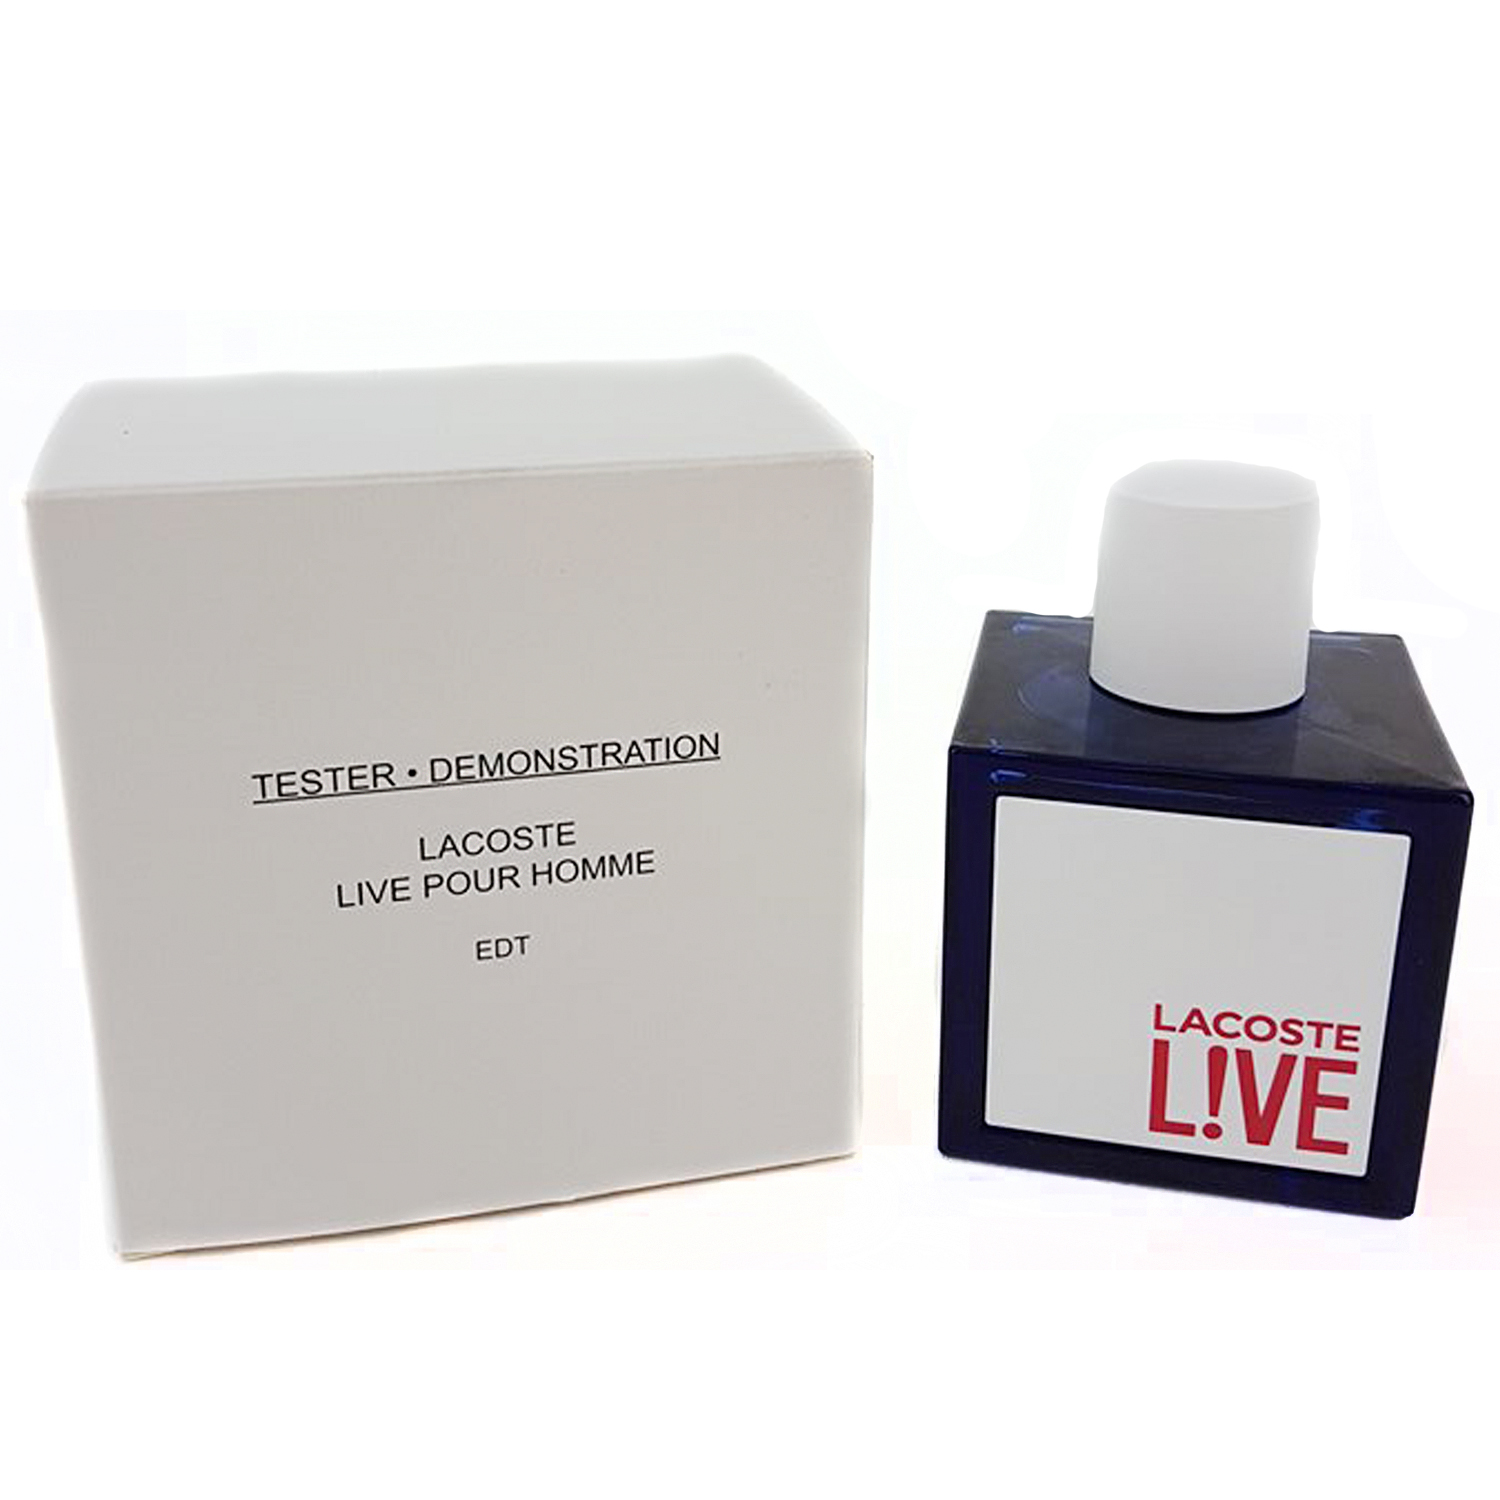 LACOSTE Live Pour Homme Eau de Toilette Spray (TESTER) 100 ml/ 3.3 fl oz (UPC: 737052780429) - LAC-TM-EDT100 product preview, discount at cheapest price